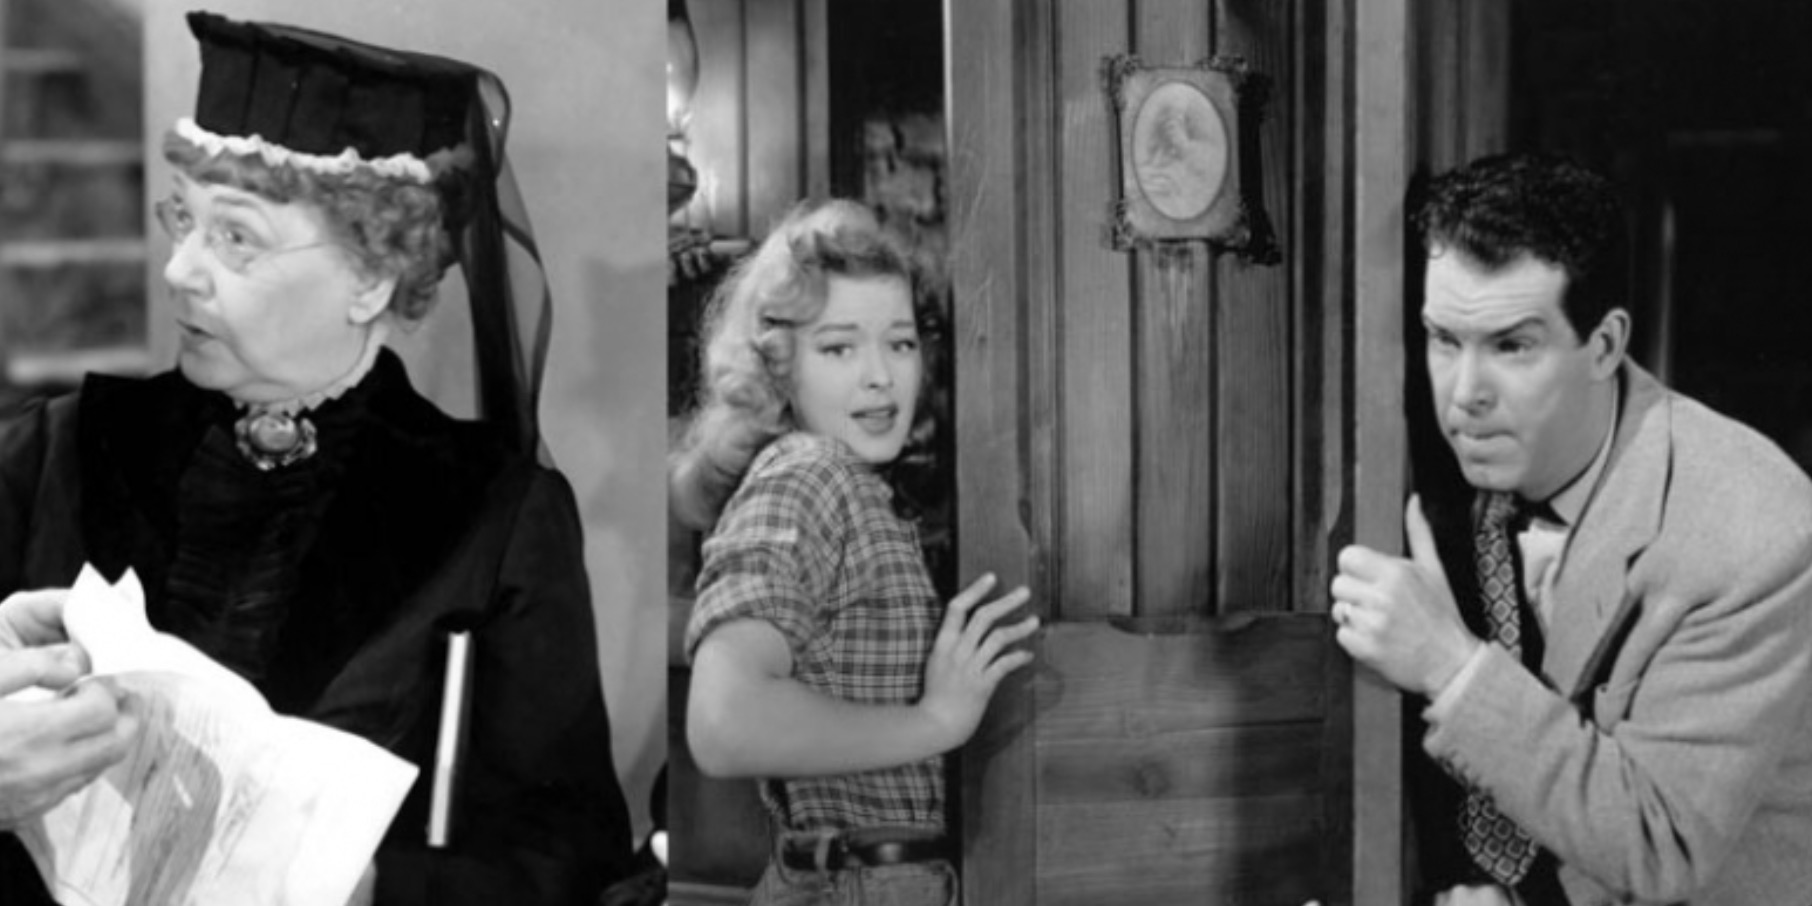 Arsenic and  old lace, movies